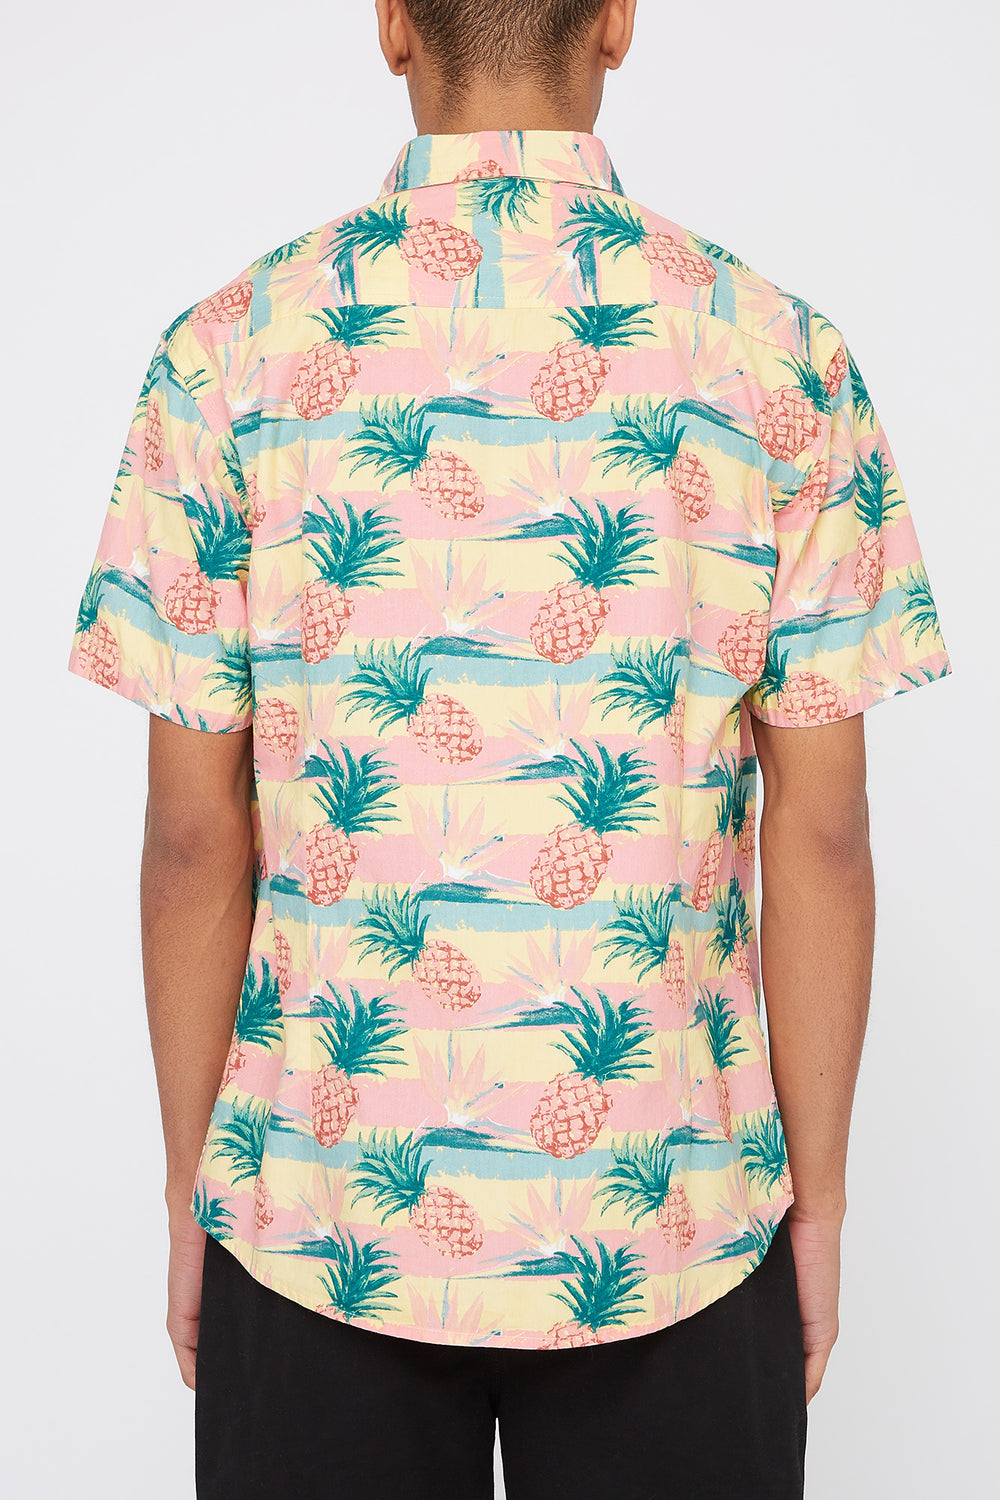 Artistry In Motion Mens Pineapple Print Button-Up Shirt Peach